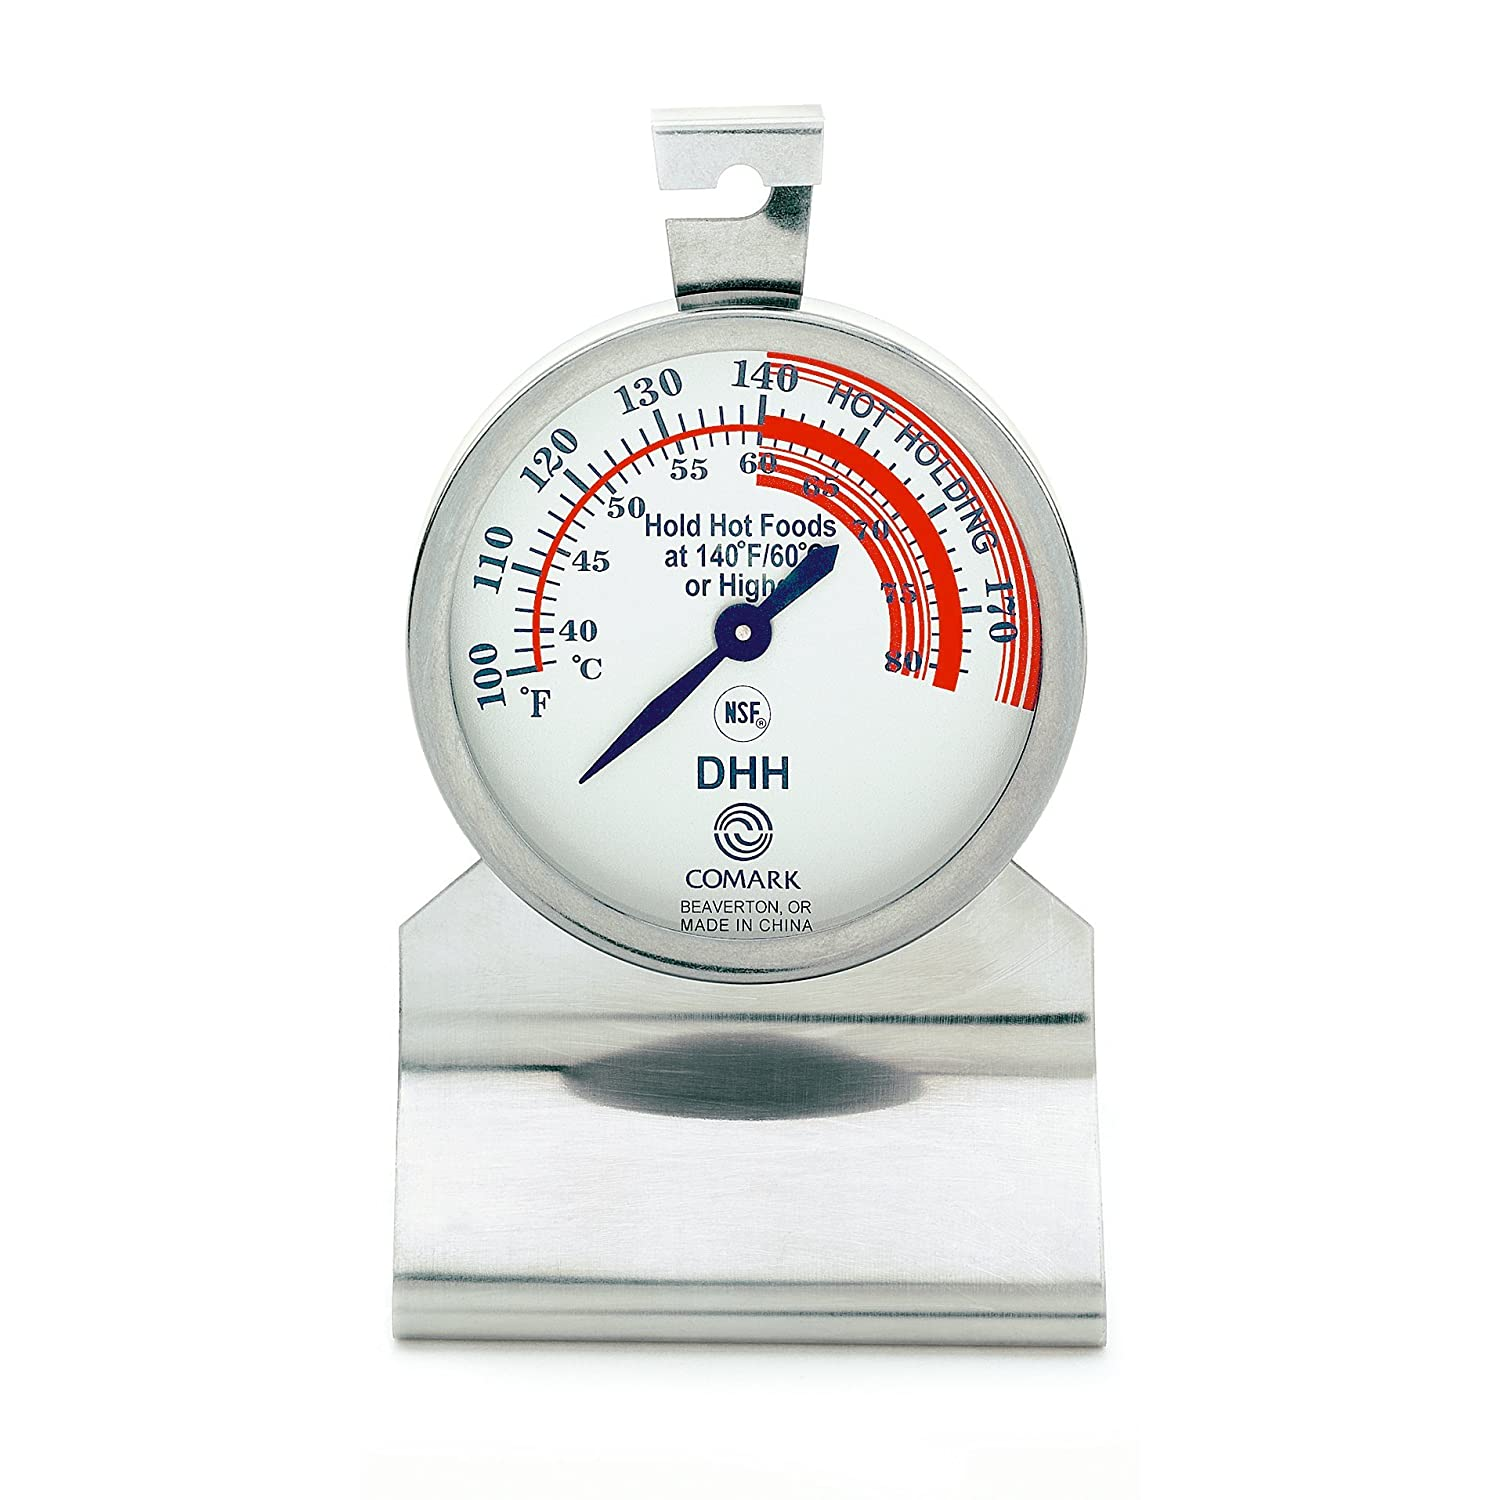 Comark DHH Hot Holding Food Thermometer Stainless Steel Body, Dial Style